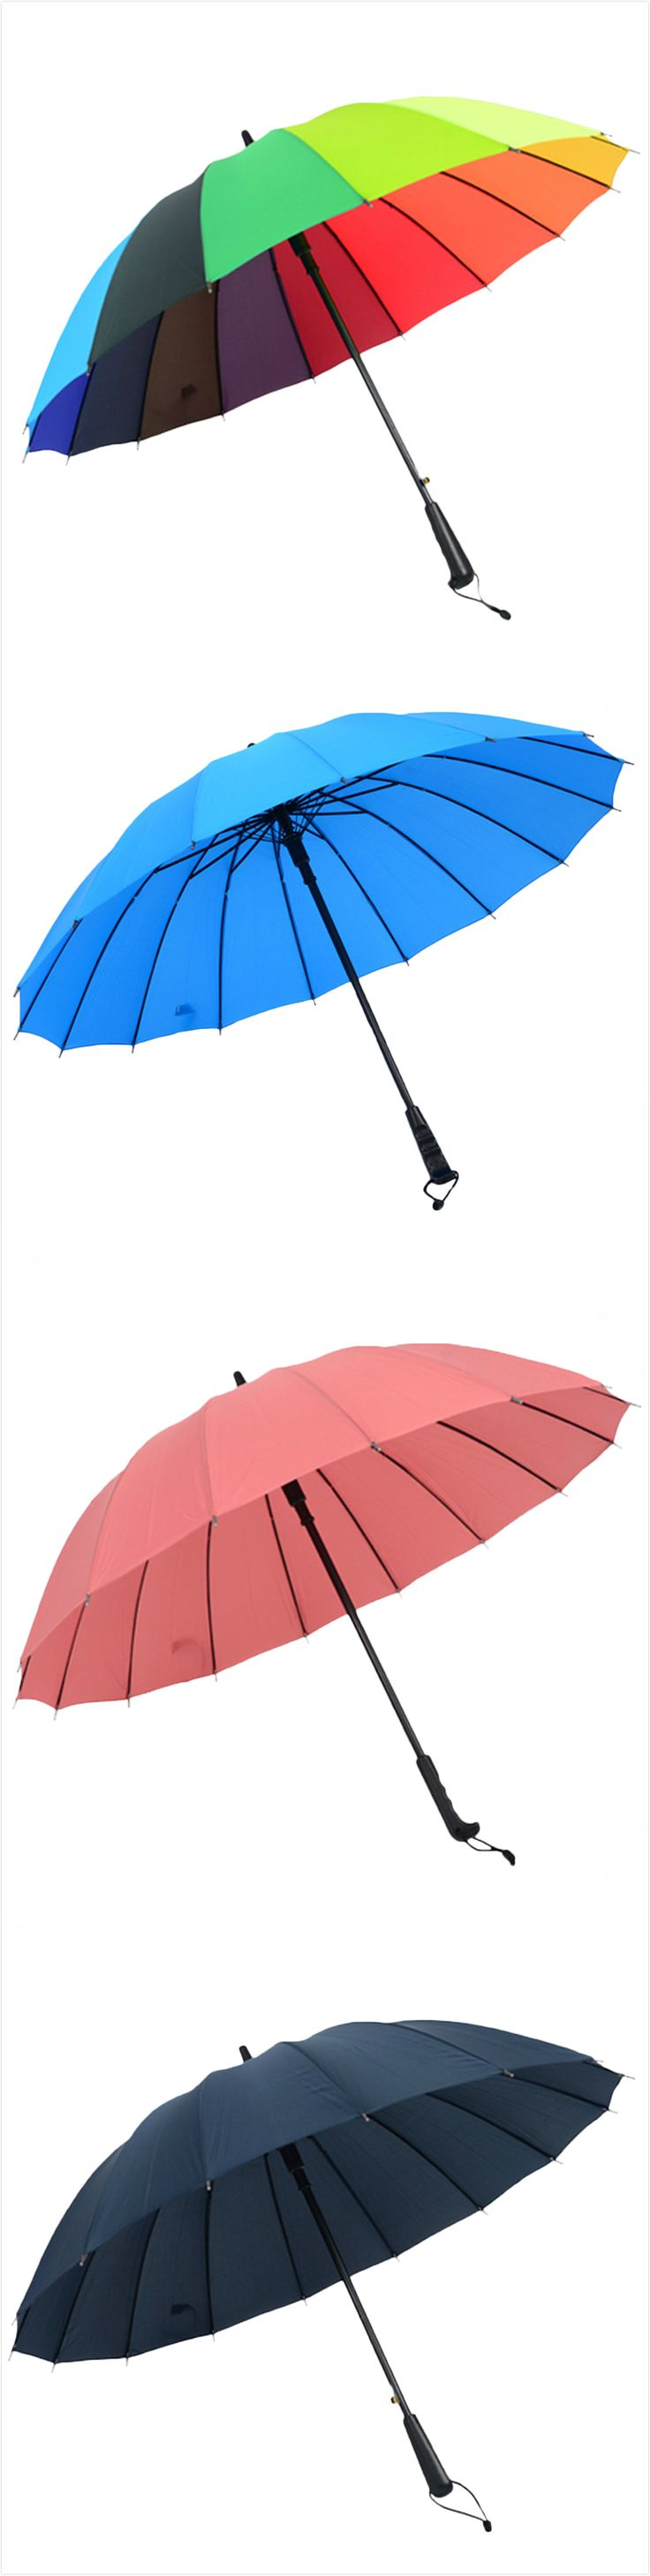 A stylish and durable companion for all the rainy days,Cozy Home umbrellas will keep you dry under the most intense downpours. With a strong Umbrella ribs, you can never fear it collapses or flip inside out.